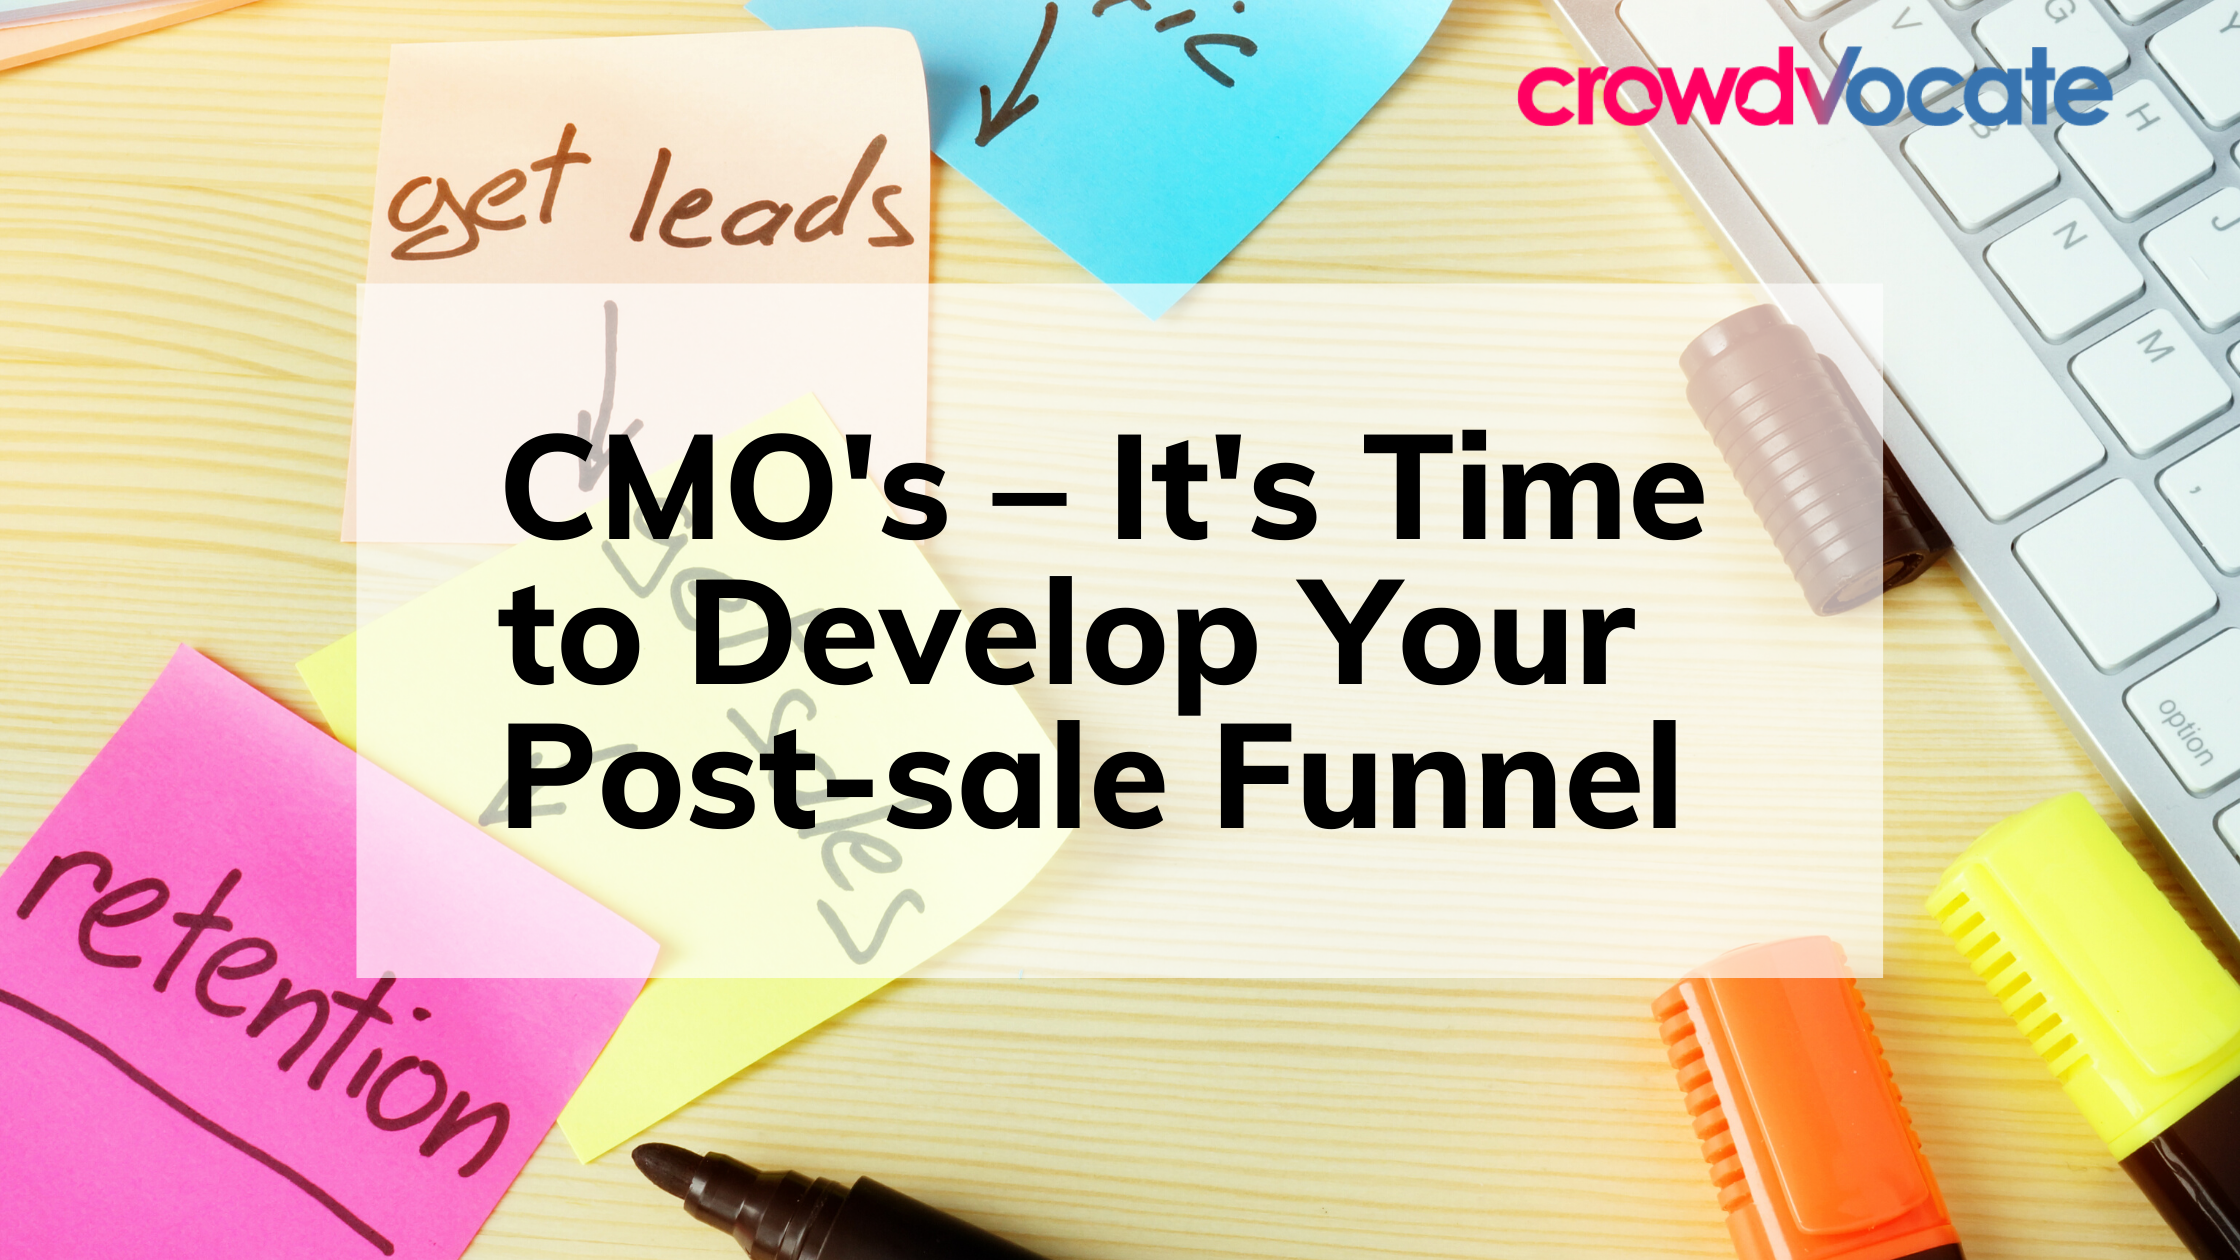 CMOs – Its Time to Develop Your Post-sale Funnel